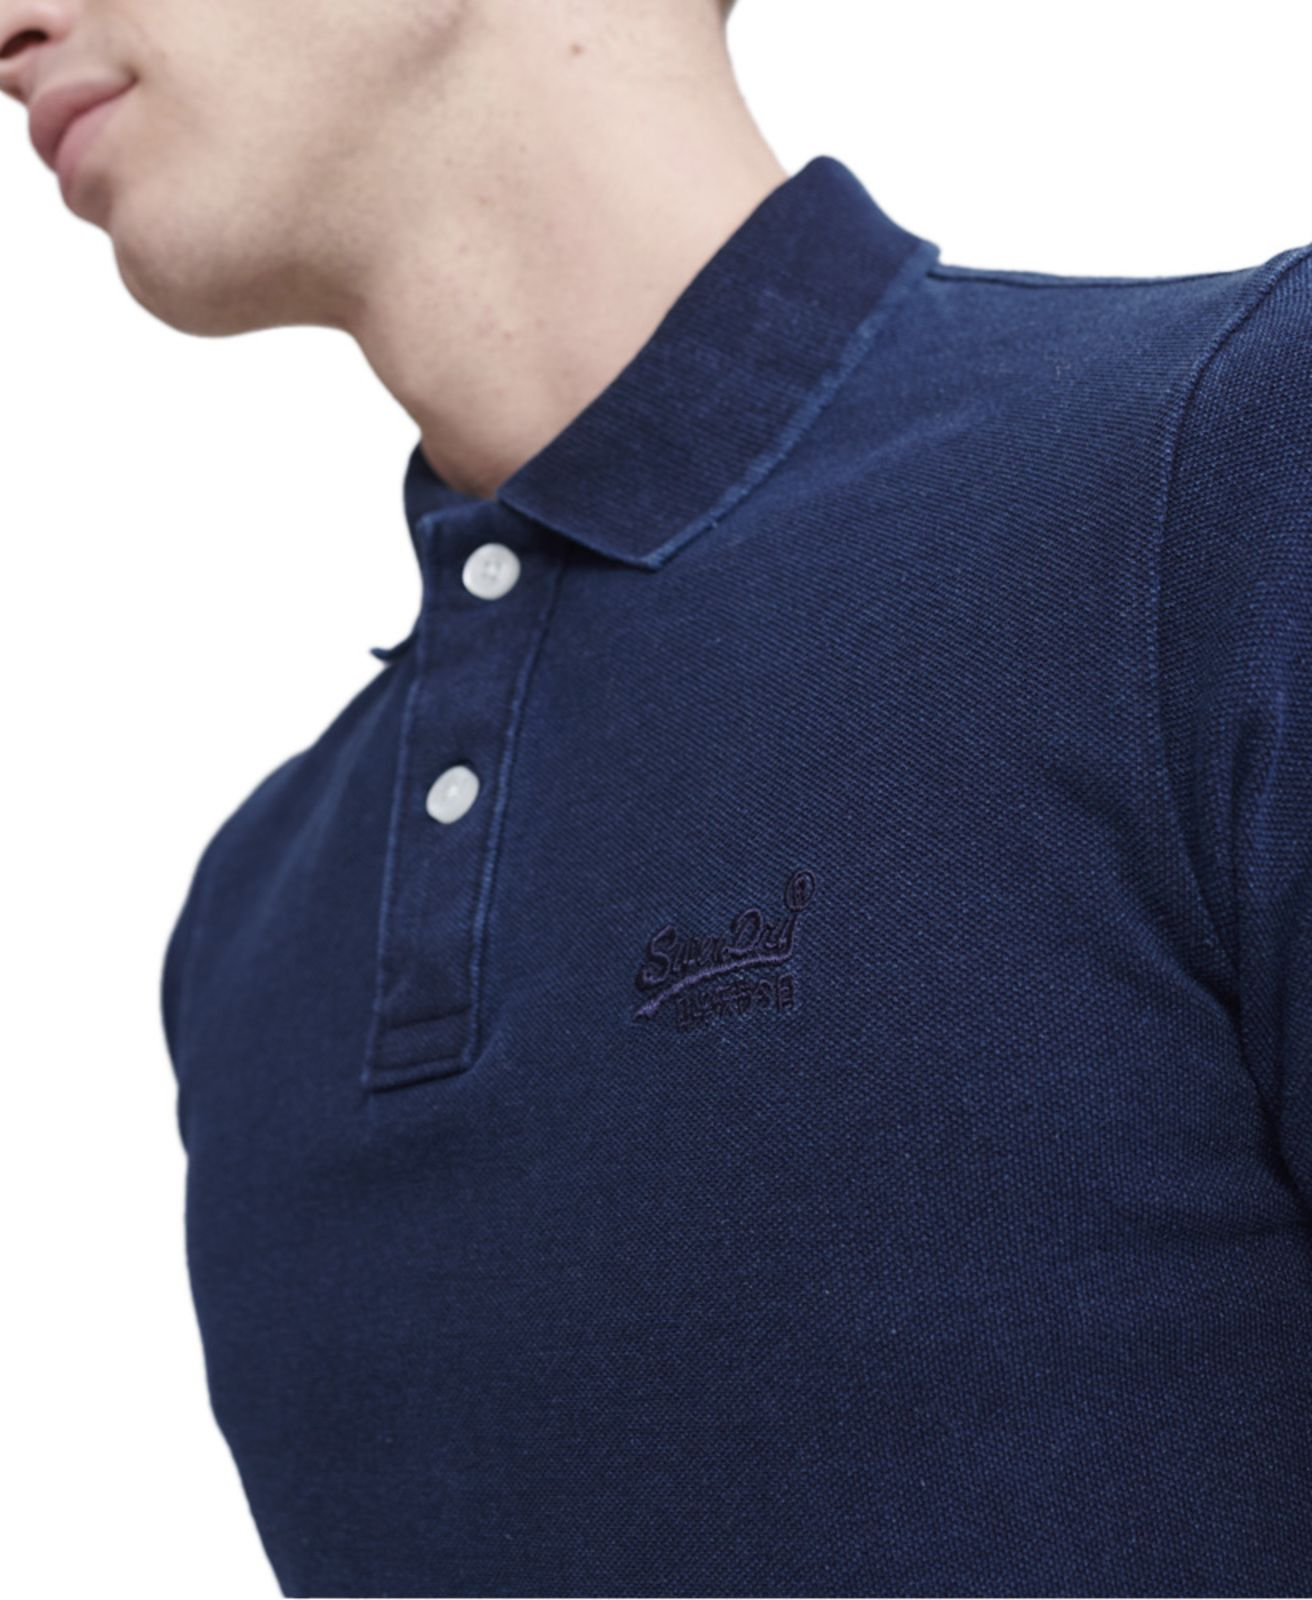 Superdry-Polo-Shirts-Classic-Pique-Short-Sleeve-Tops-Assorted-Colours thumbnail 18